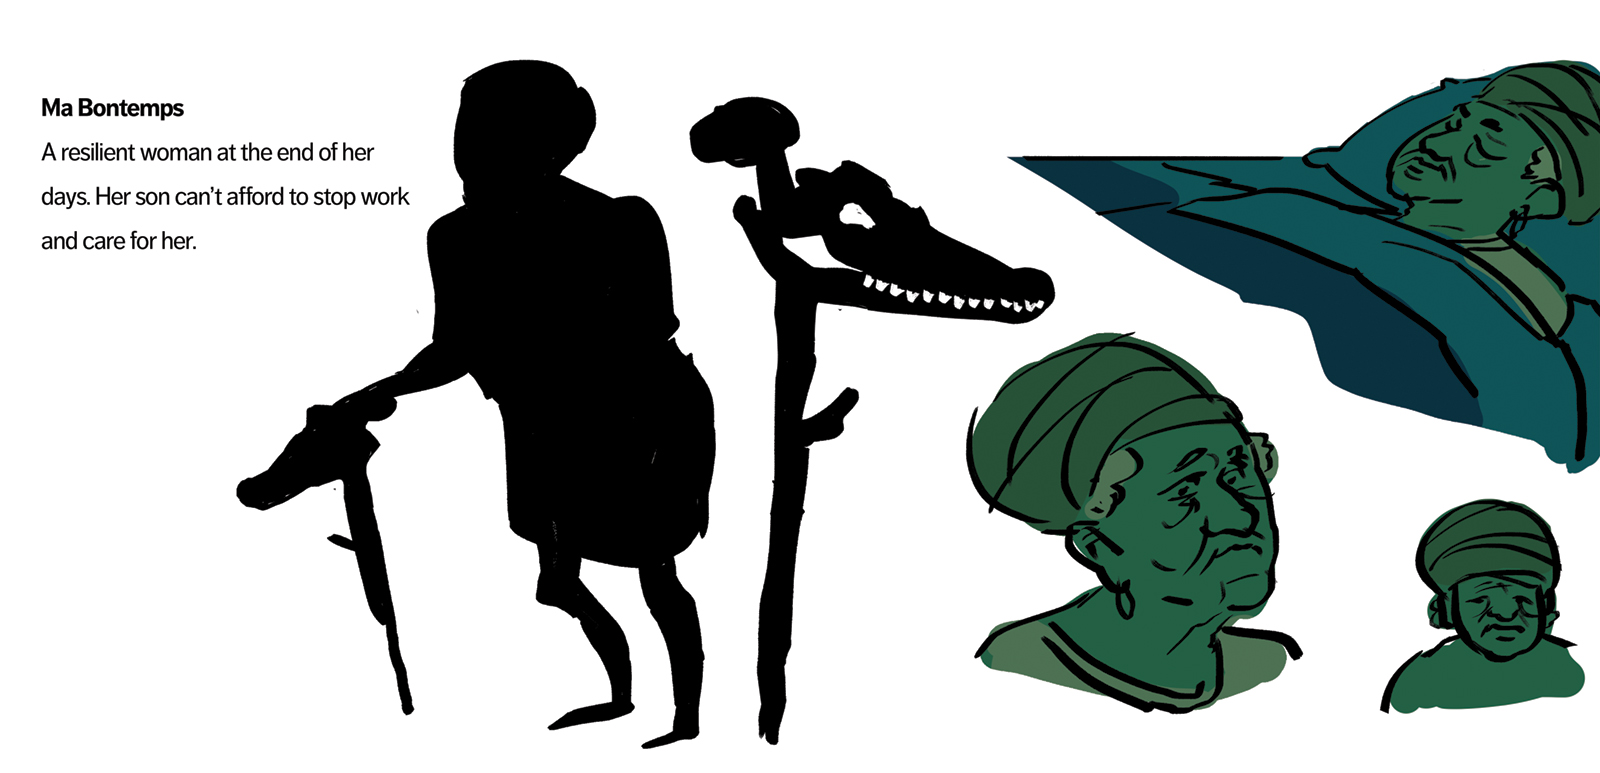 Ma Bontemps concept art. She is elderly and her health is failing so she's bed-bound throughout the story.